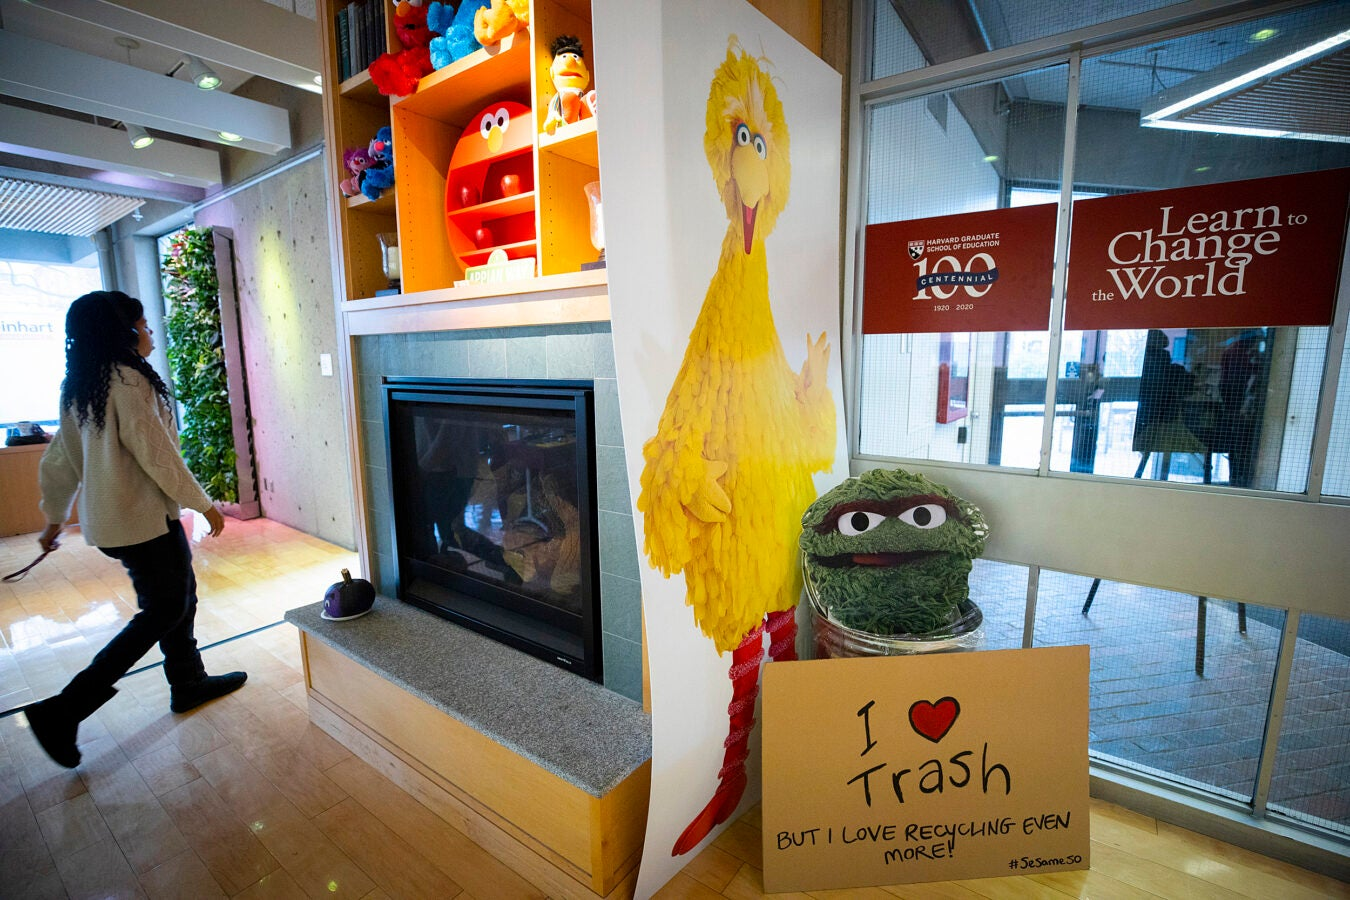 Shelving over a fireplace at the Ed School is lined with Sesame Street toys.